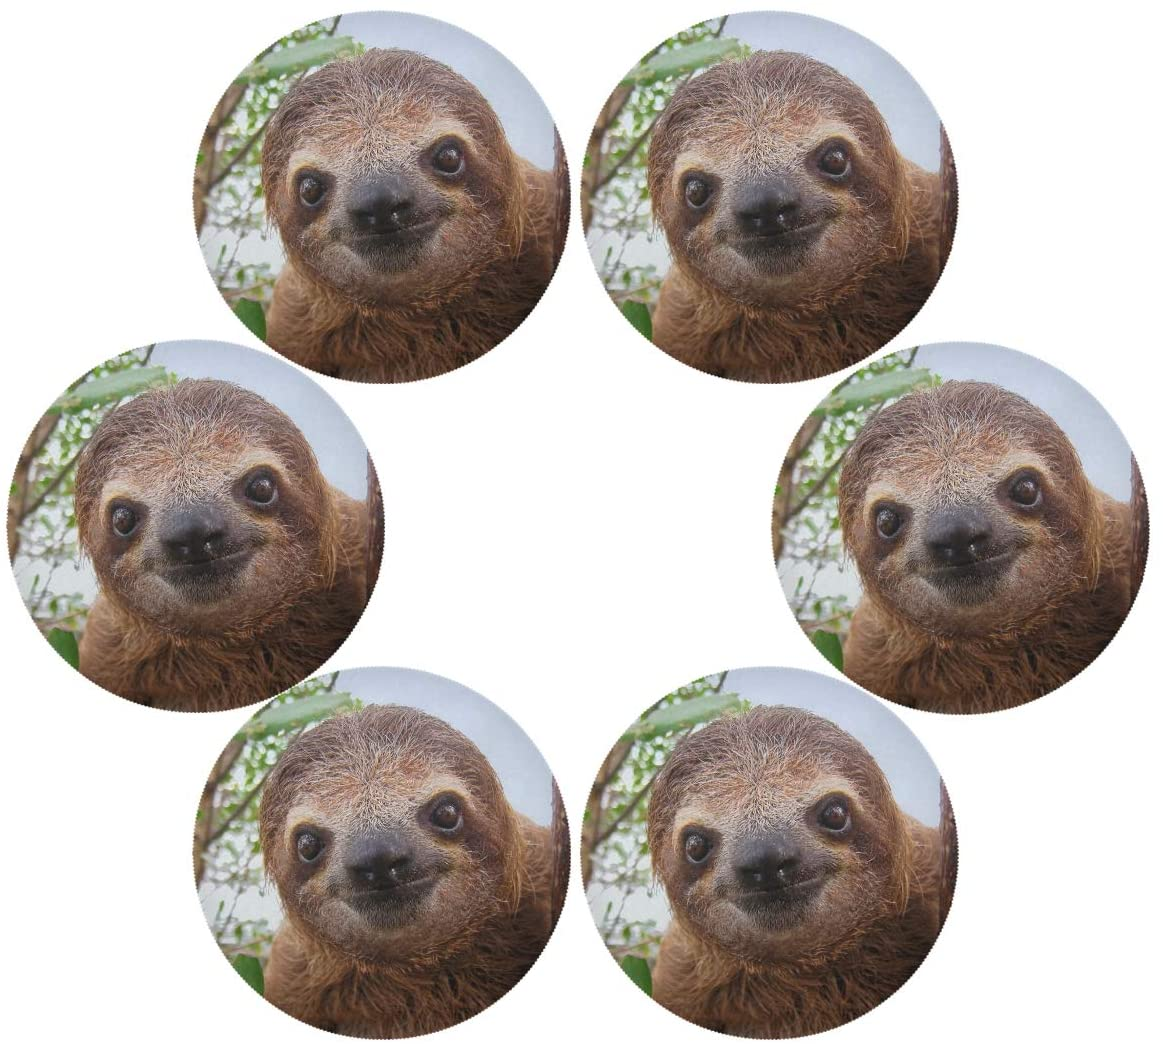 senya Baby Sloth Round Place mats for Kitchen Dining Table Runner Heat Insulation Non-Slip Washable Fall Placemats Set of 6